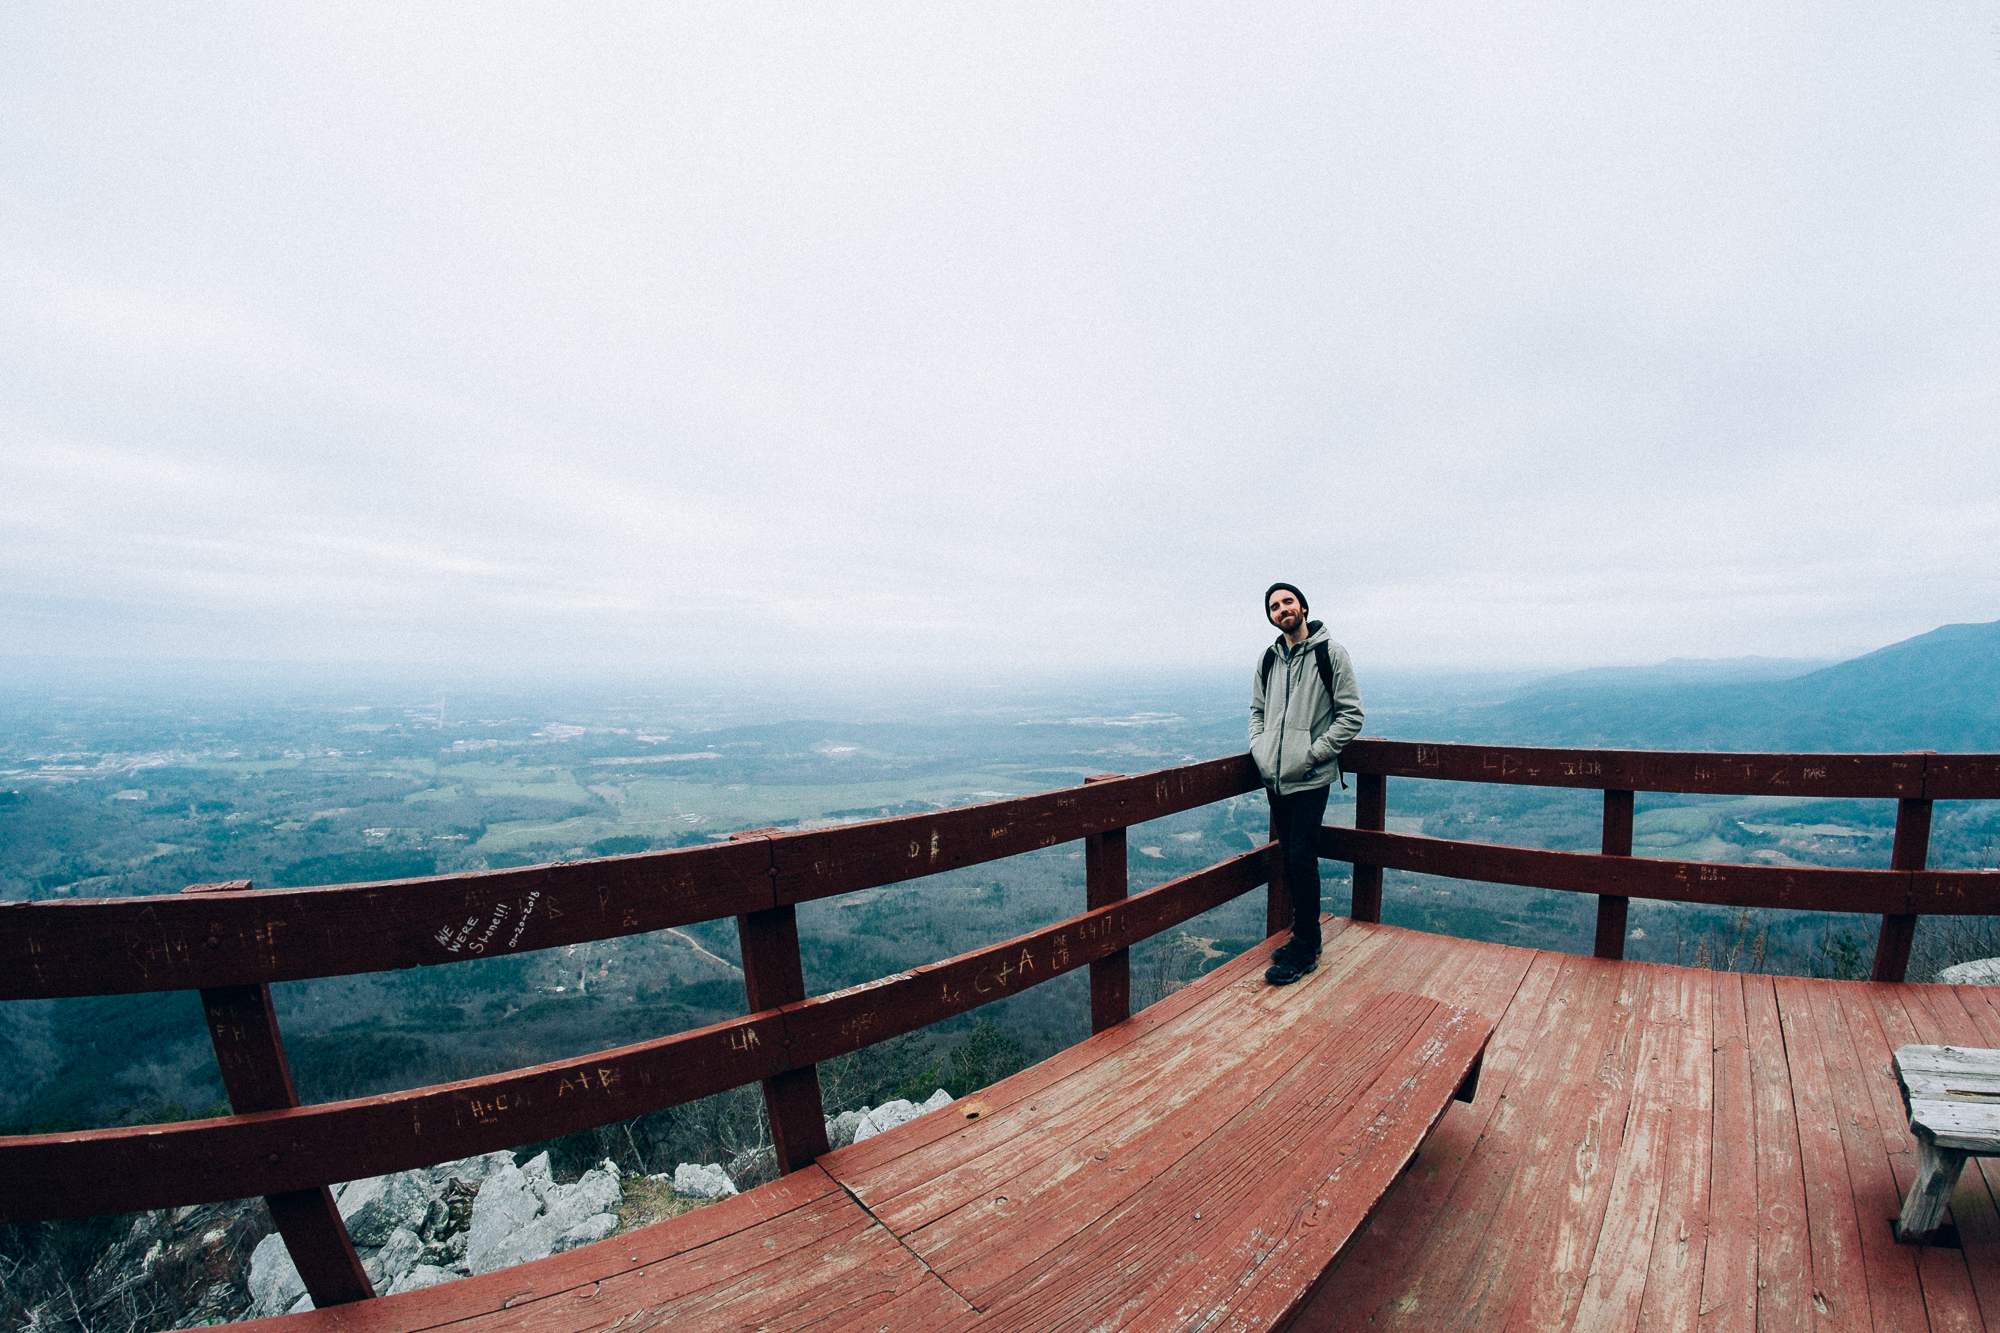 The views here may have even been better than the scenic lookout we went to in  Bergen, Norway .